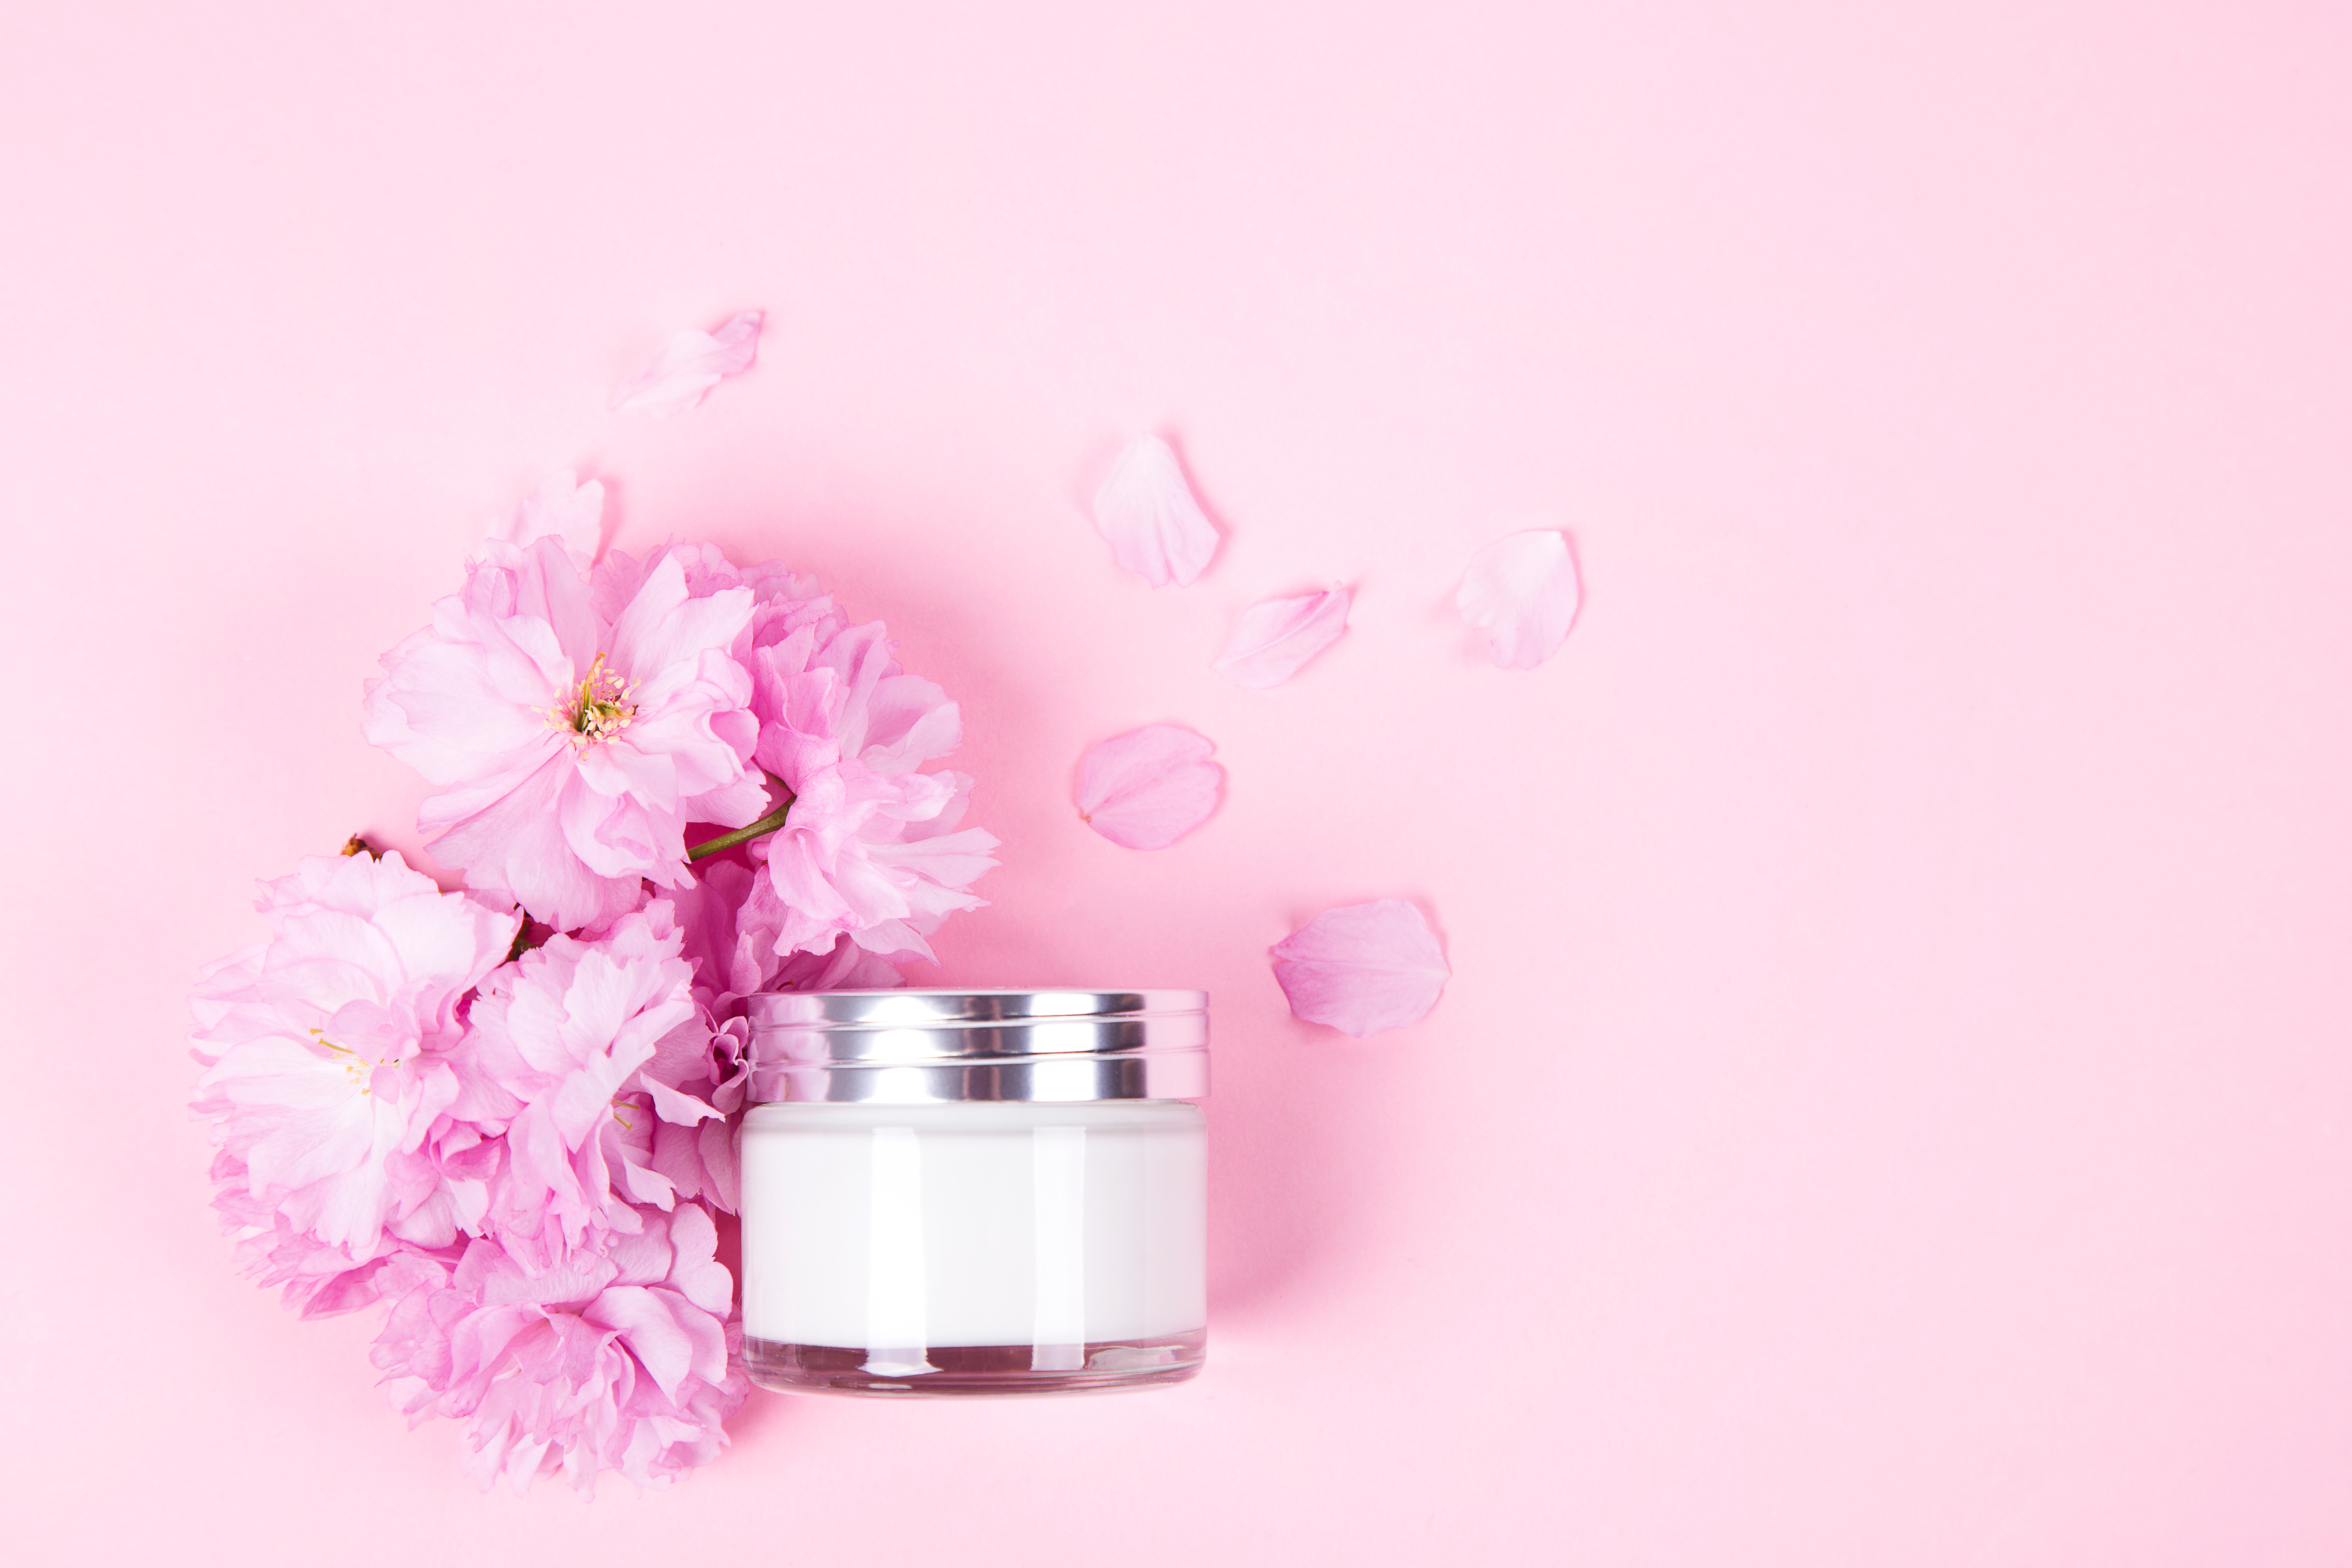 Luxe cosmetics, anti-age moisturizer and